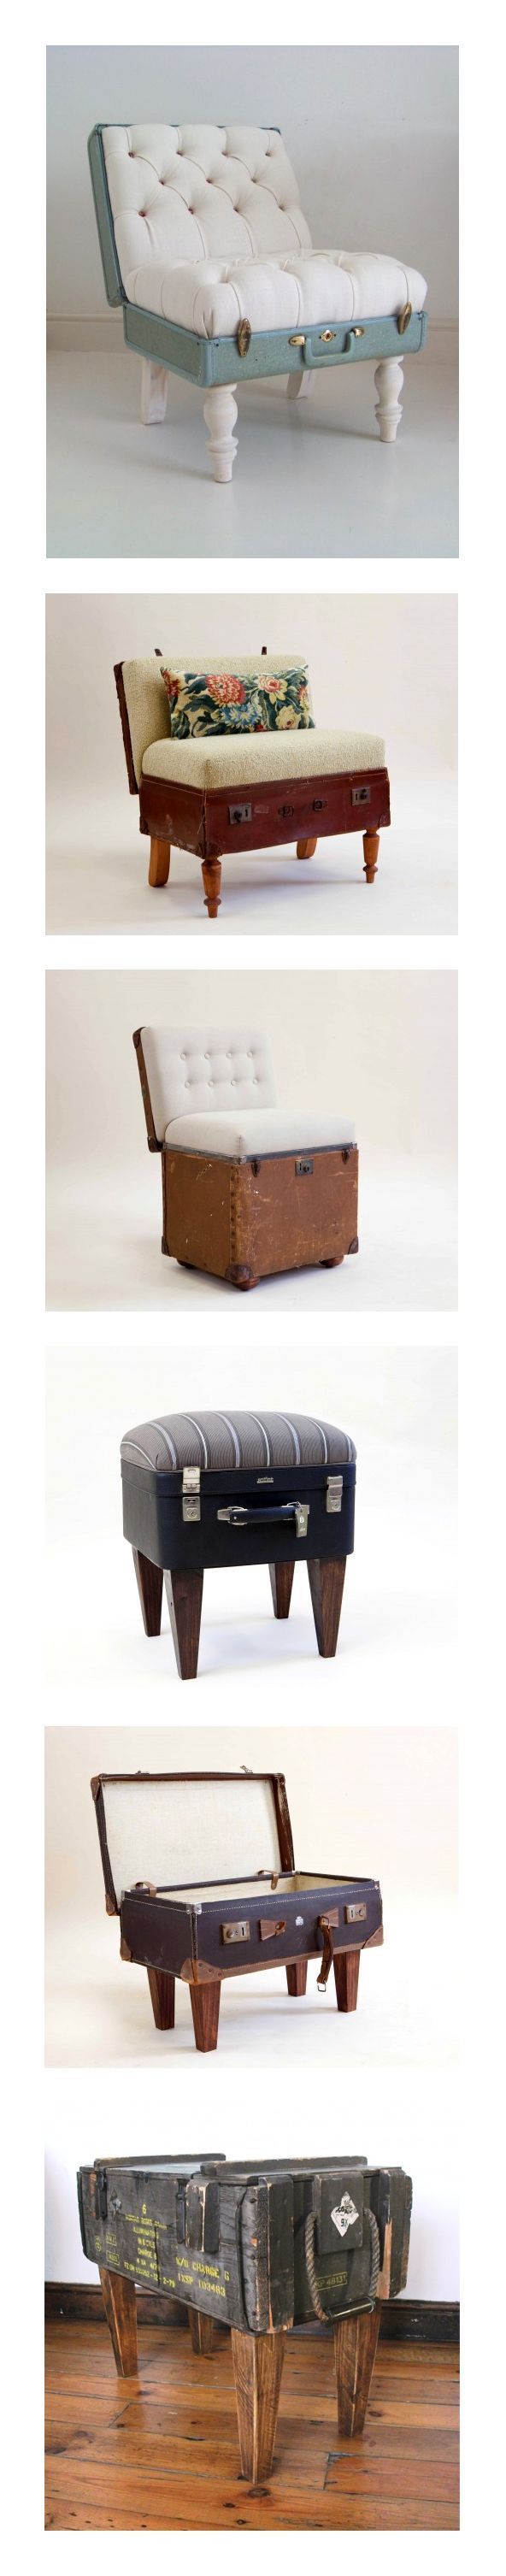 UPCYCLING :: Take and old suitcase & a few upholstery skills & you have yourself a unique chair ♥ | #repurpose #stools #upcycle